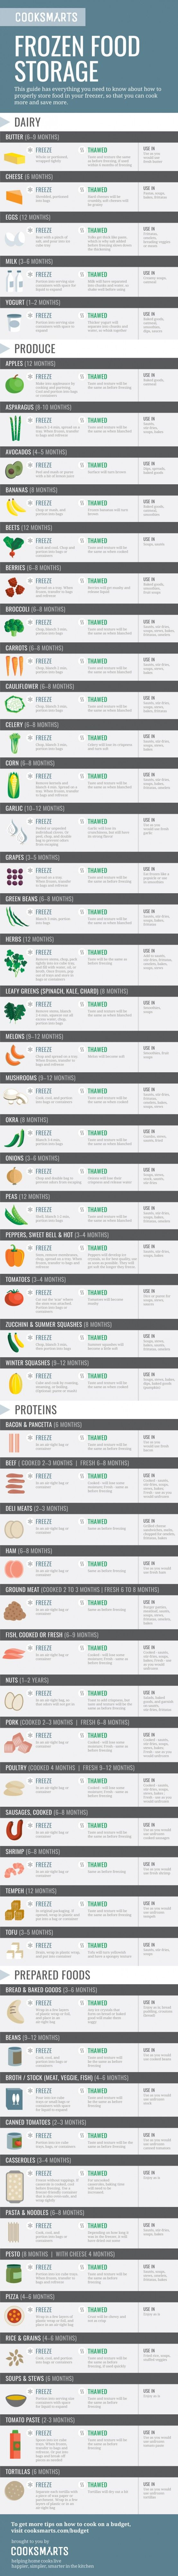 Everything you need to know about how to properly store food in your freezer.